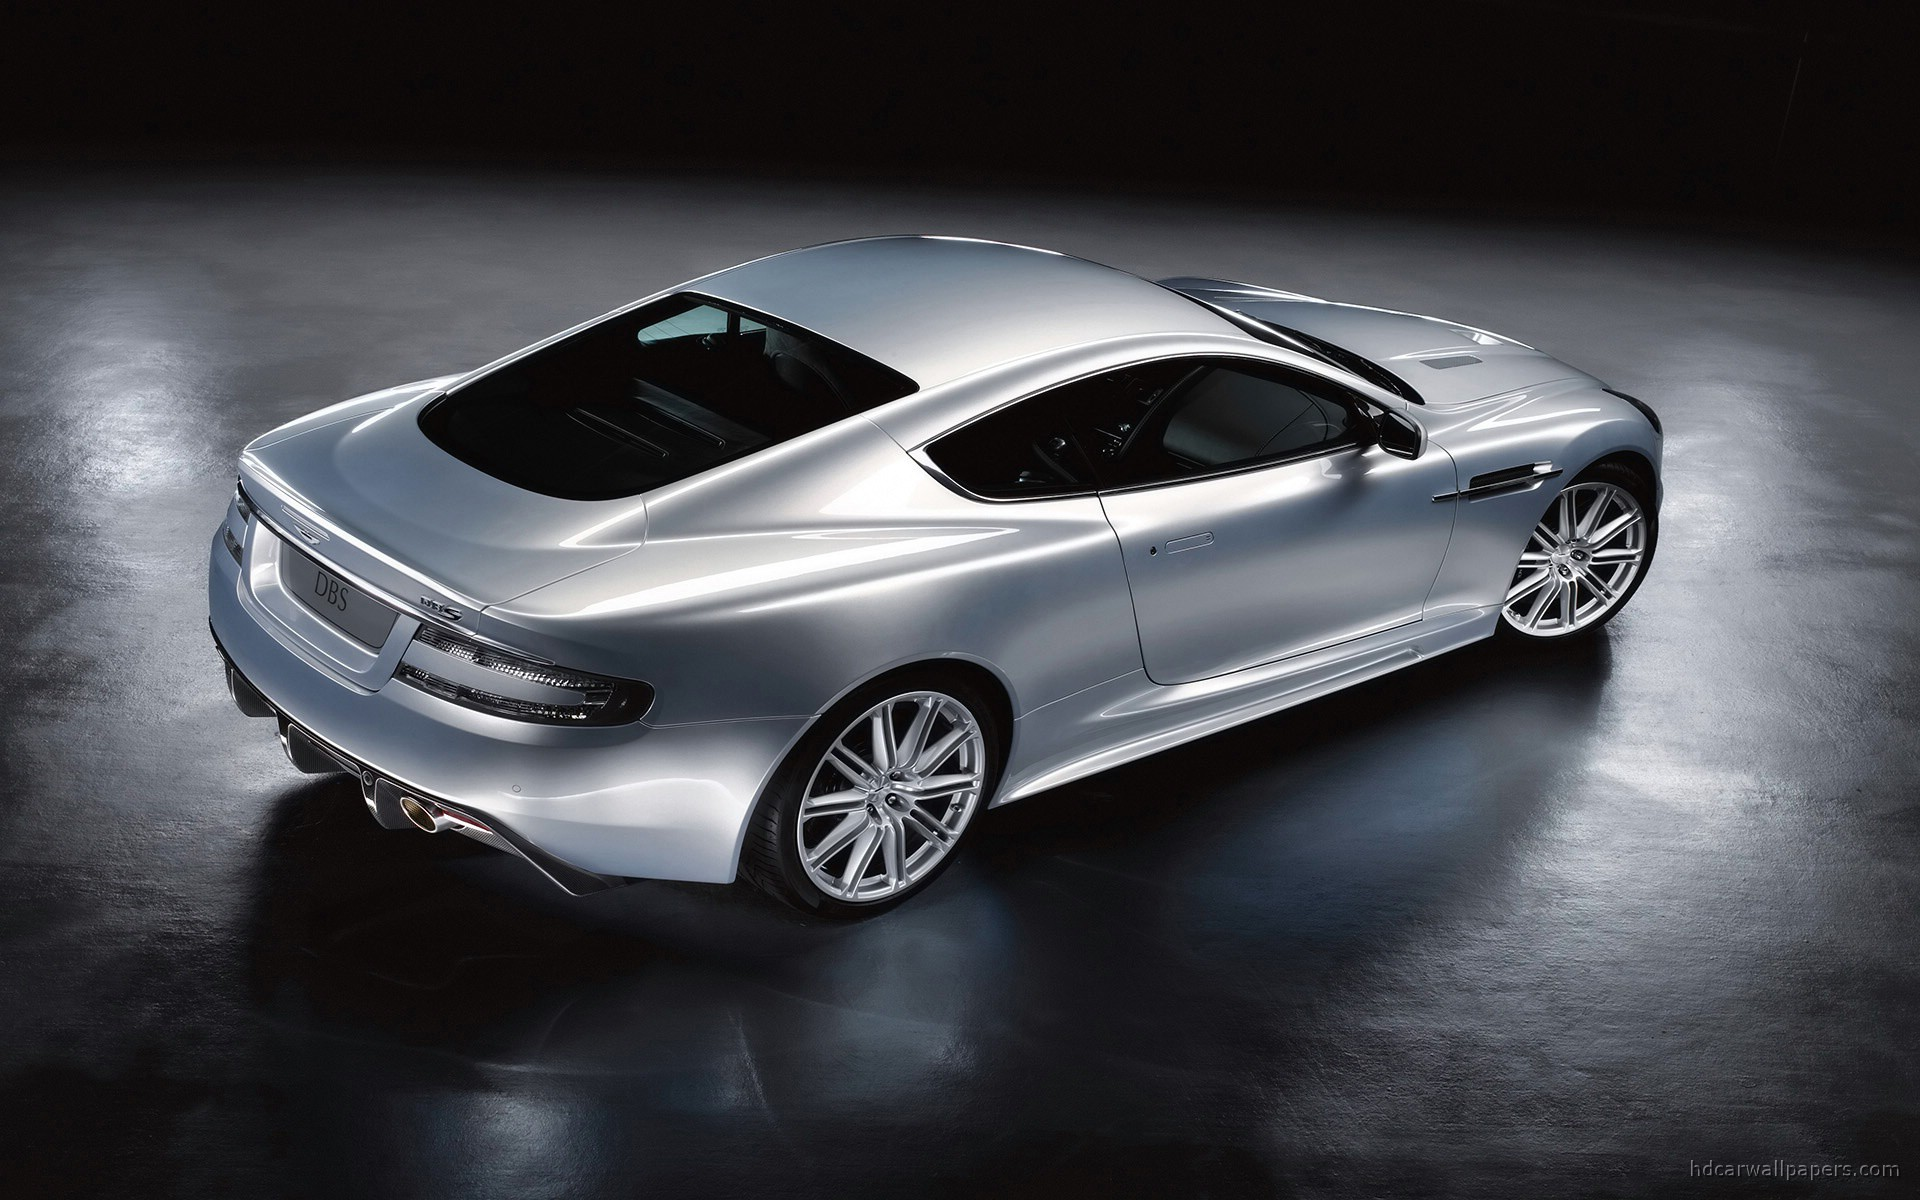 Aston Martin Dbs Wallpaper Widescreen Aston Martin Dbs 3 1920x1200